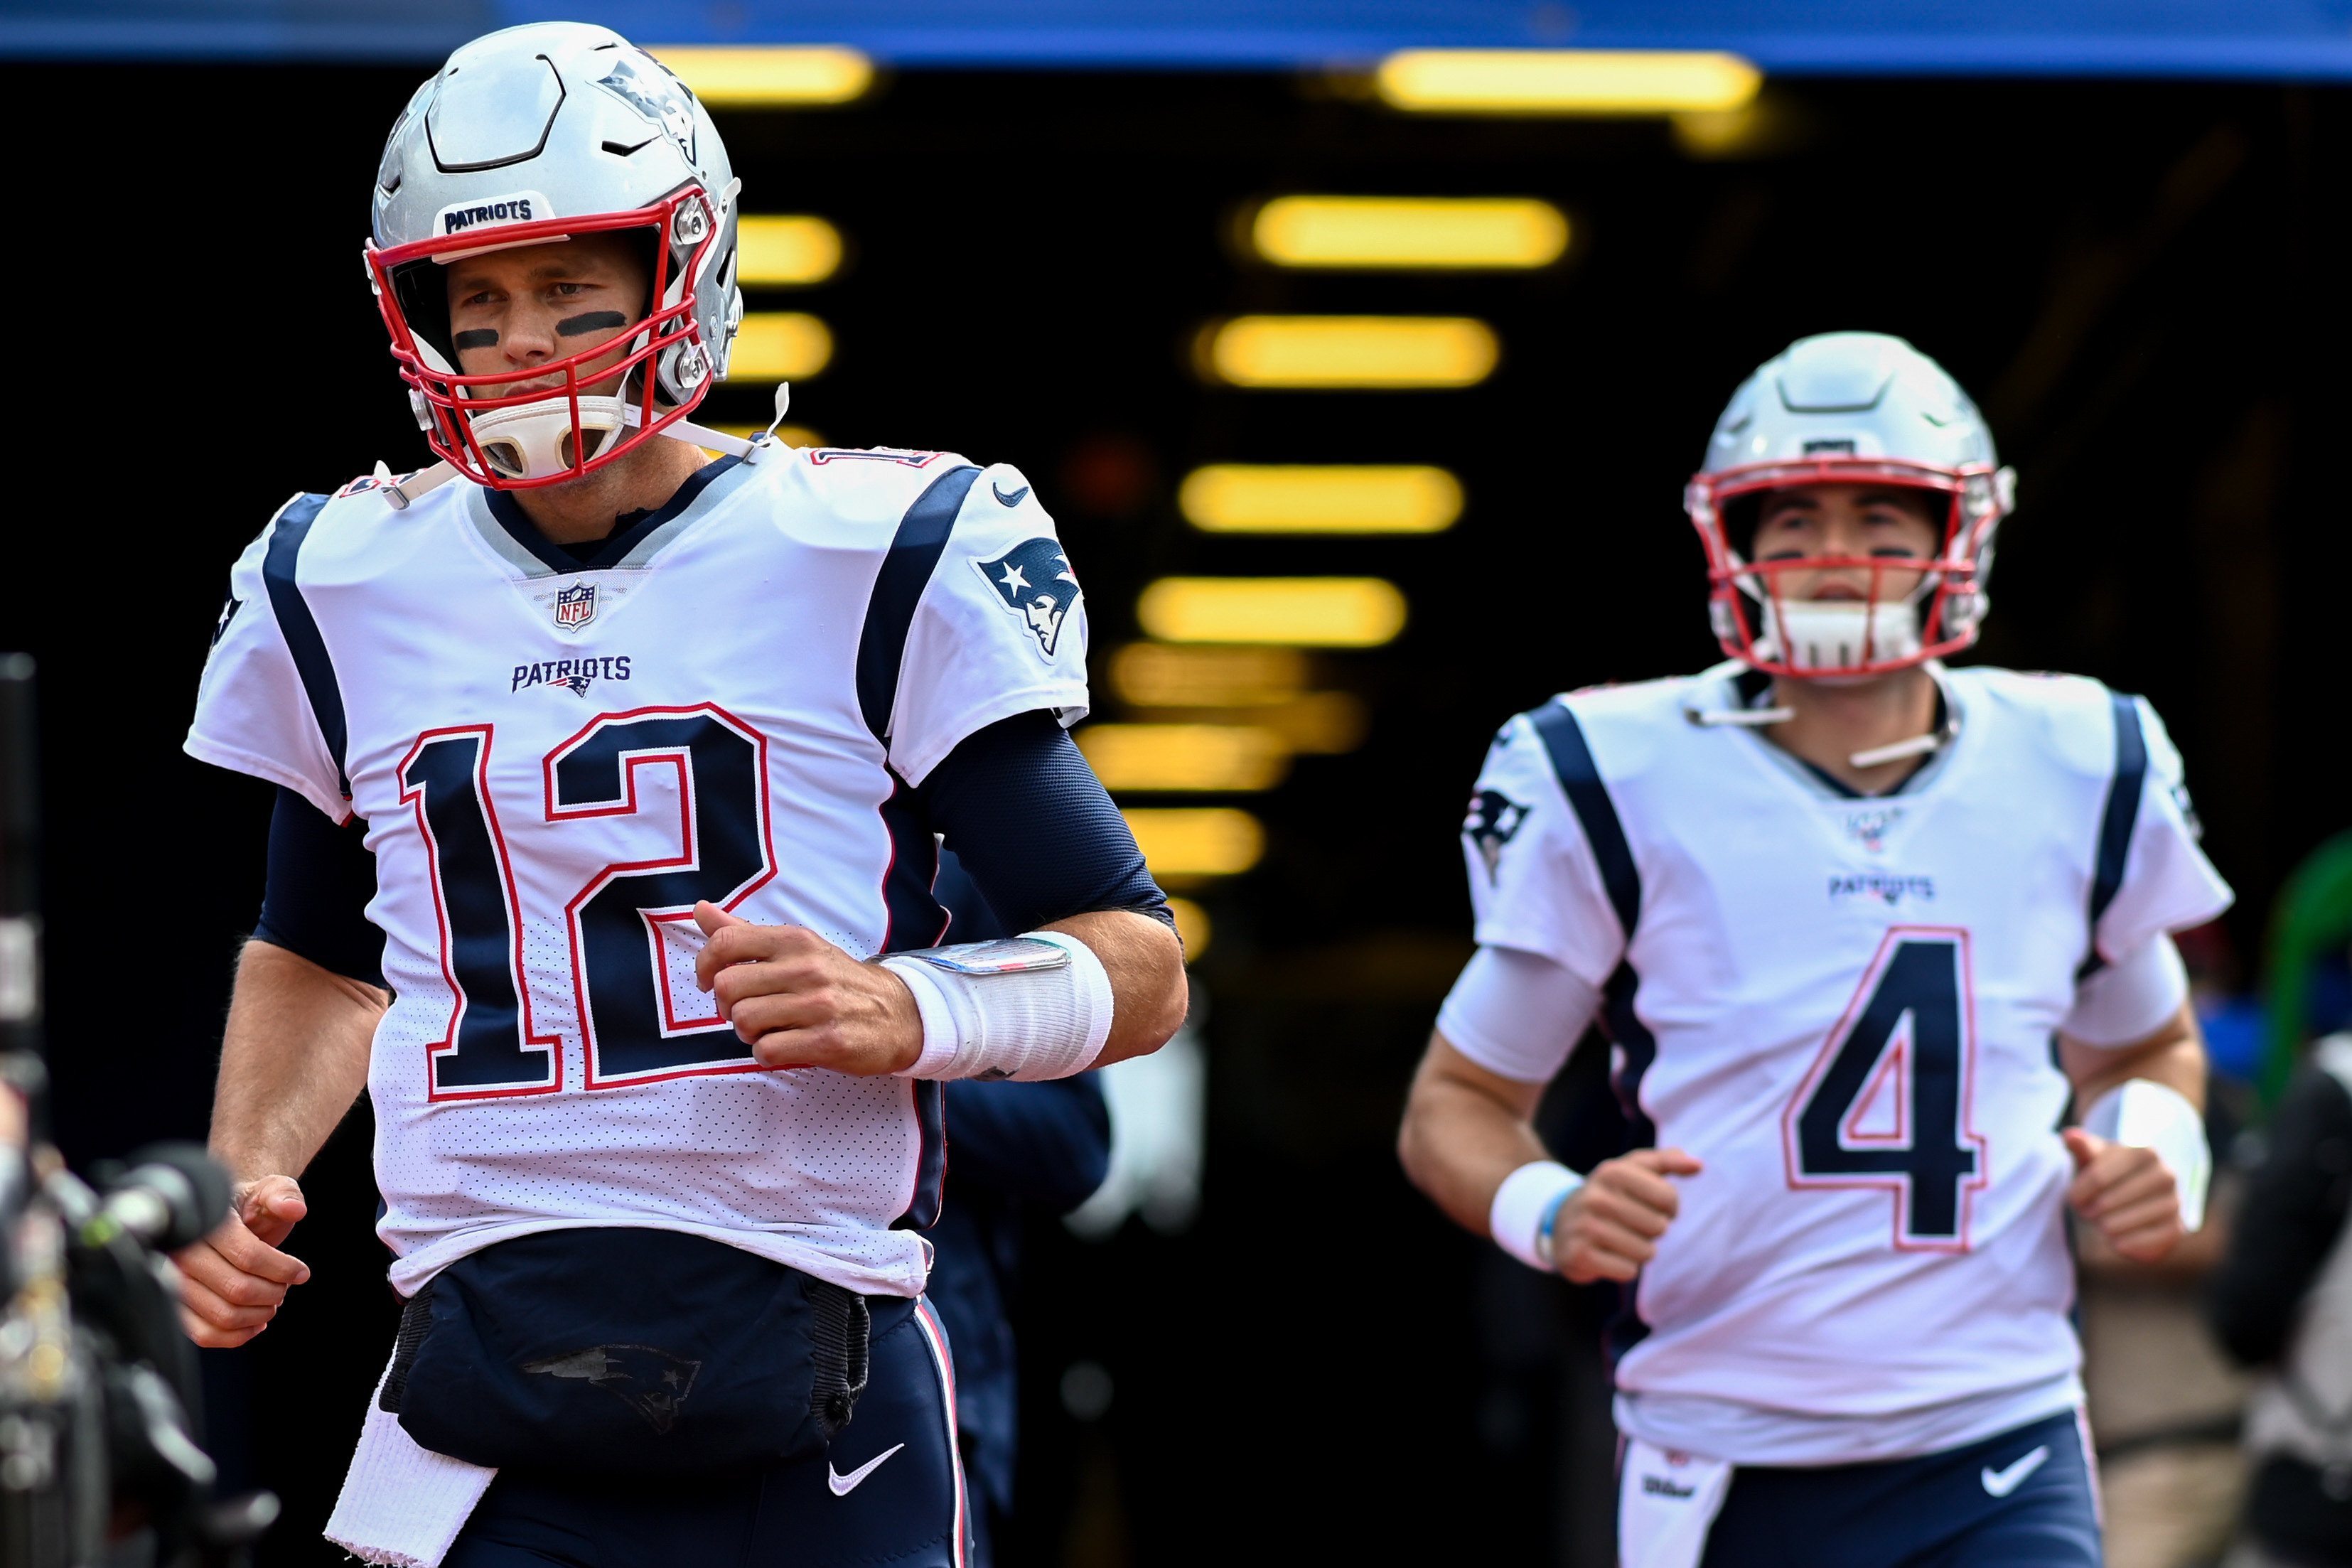 The Patriots Have Two Options: Re-Sign Tom Brady, or Rebuild With Jarrett Stidham